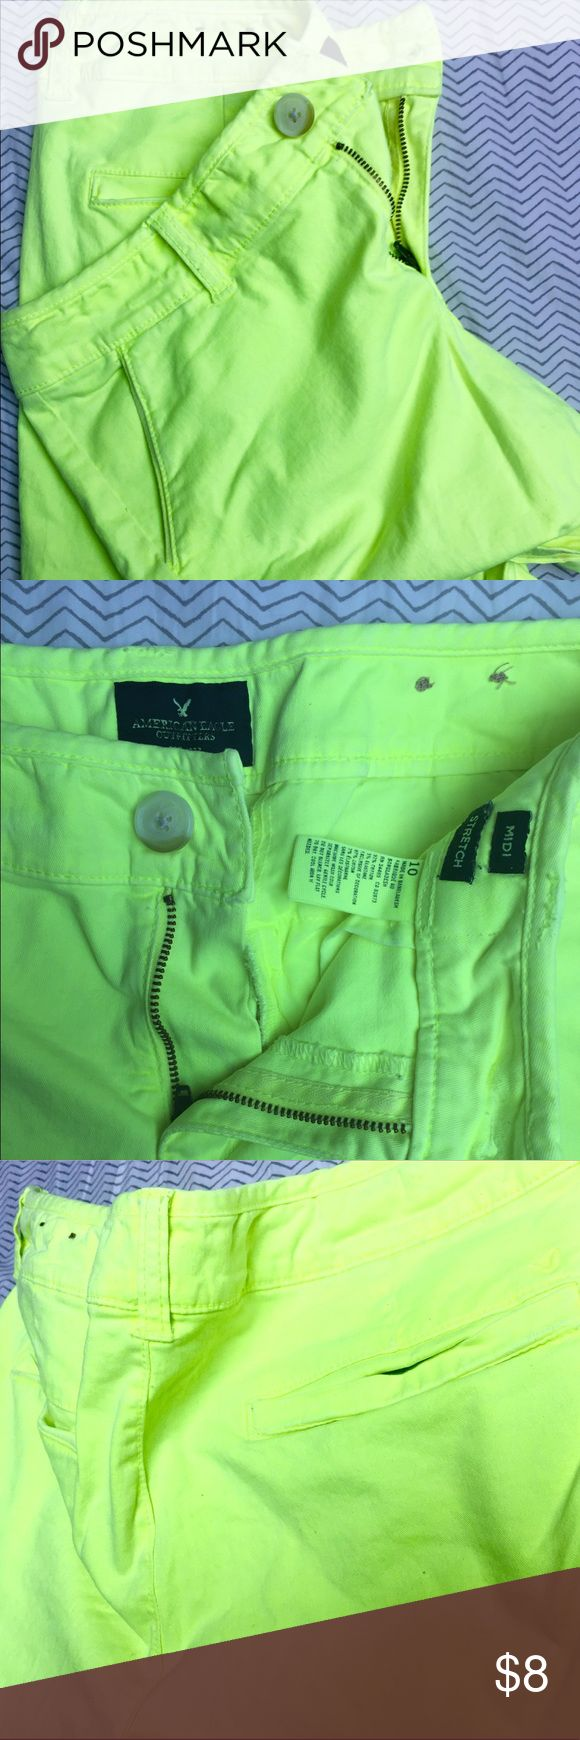 💚Neon Green American Eagle Shorts Bright neon green American Eagle shorts. There are very minor pen marks on the front (pictured) which is the reason for the low price. These are GREAT summer shorts to show off tan legs! They can be dressed up or down 💚😍 American Eagle Outfitters Shorts